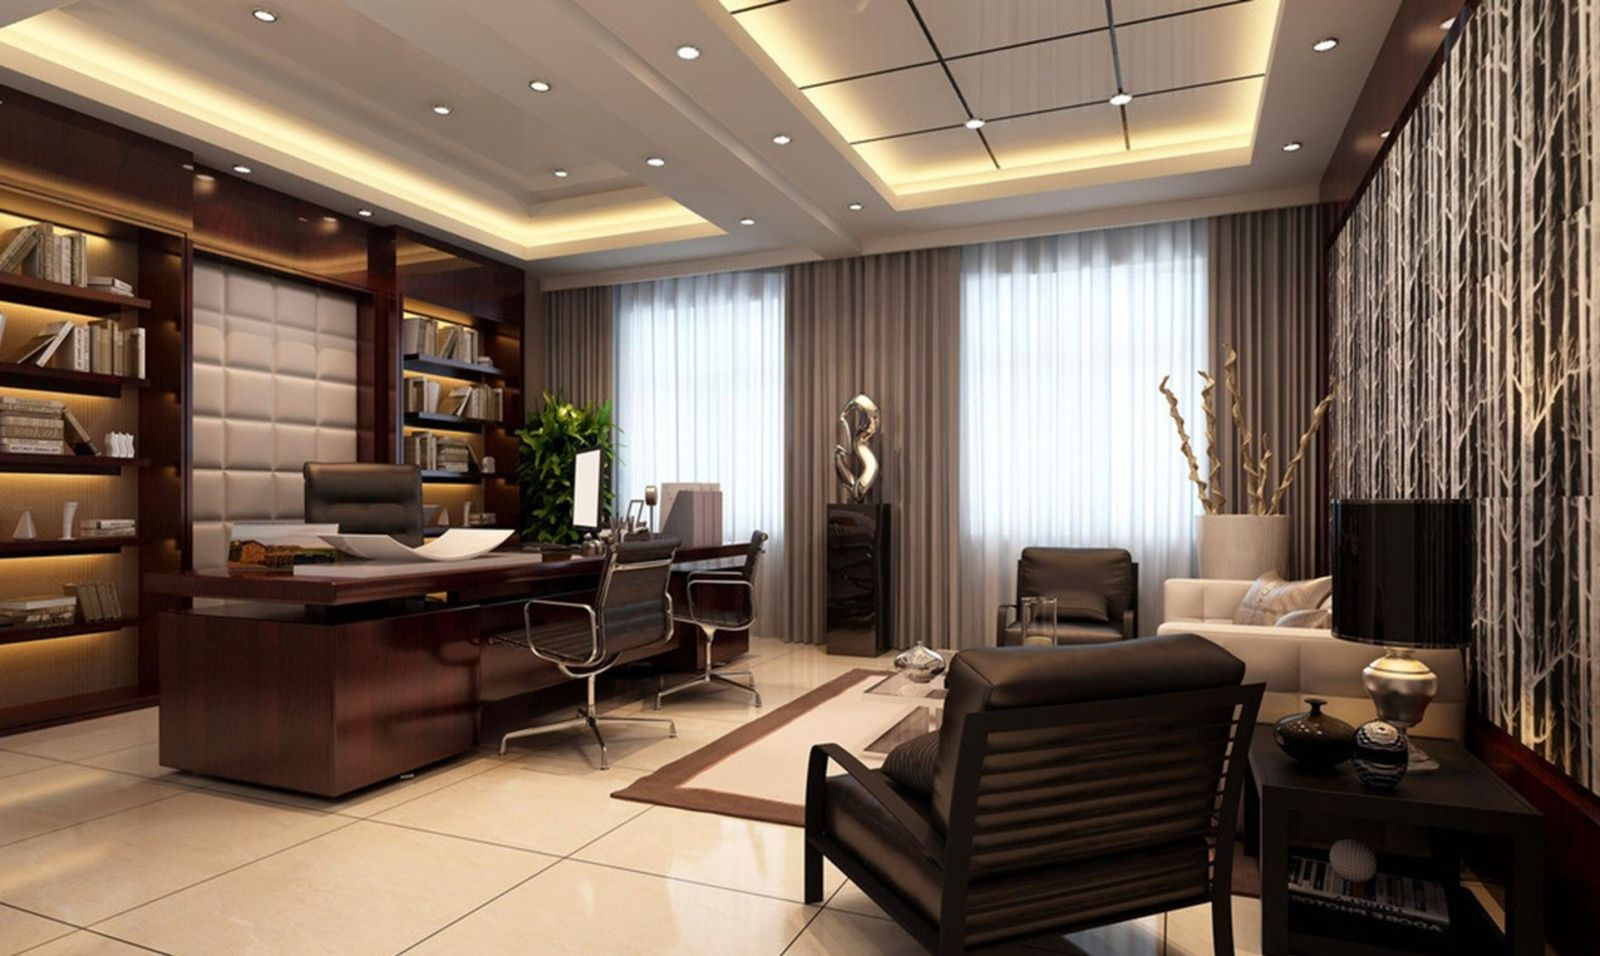 modern ceo office interior design with executive office